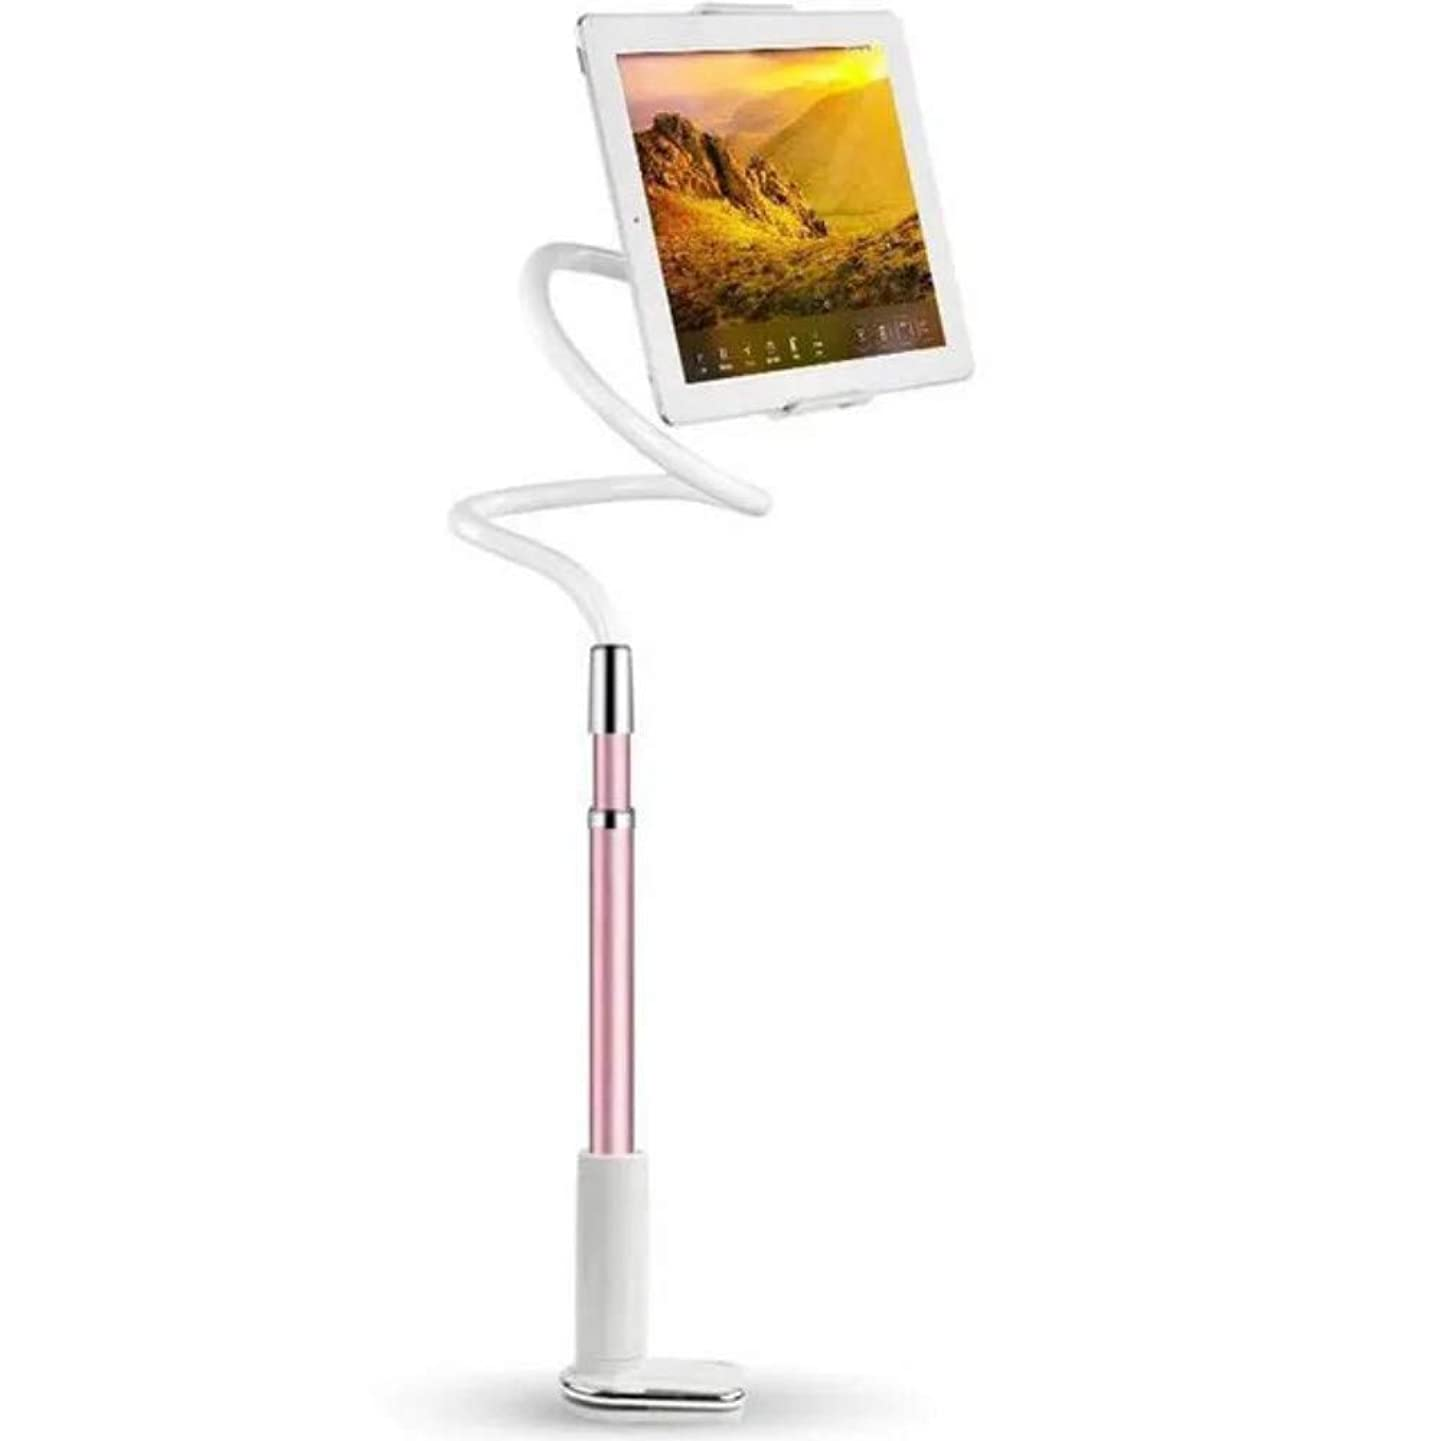 Mydio Tablet Holder,Tablet Stand: Lazy Holder Flexible Arm Tablet Mount Compatible with iPad Mini Pro Air, Nintendo Switch, Samsung Galaxy Tabs, Fire 8 10 - Rose Gold